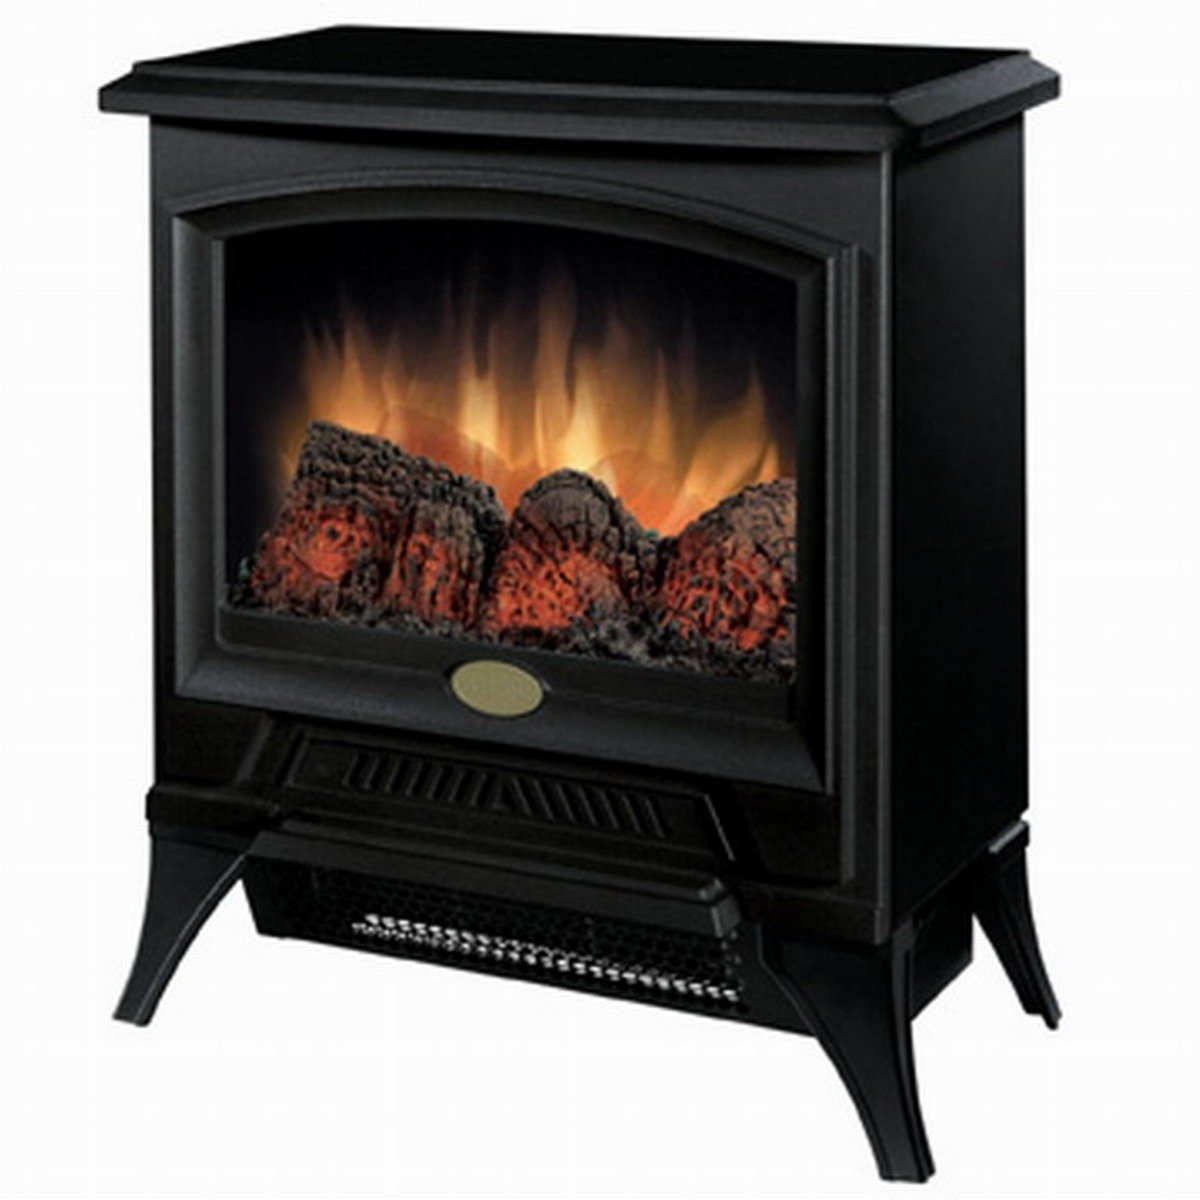 Space Heaters Fireplace Compact Stove Style Electric Fireplace Space Heater In Black